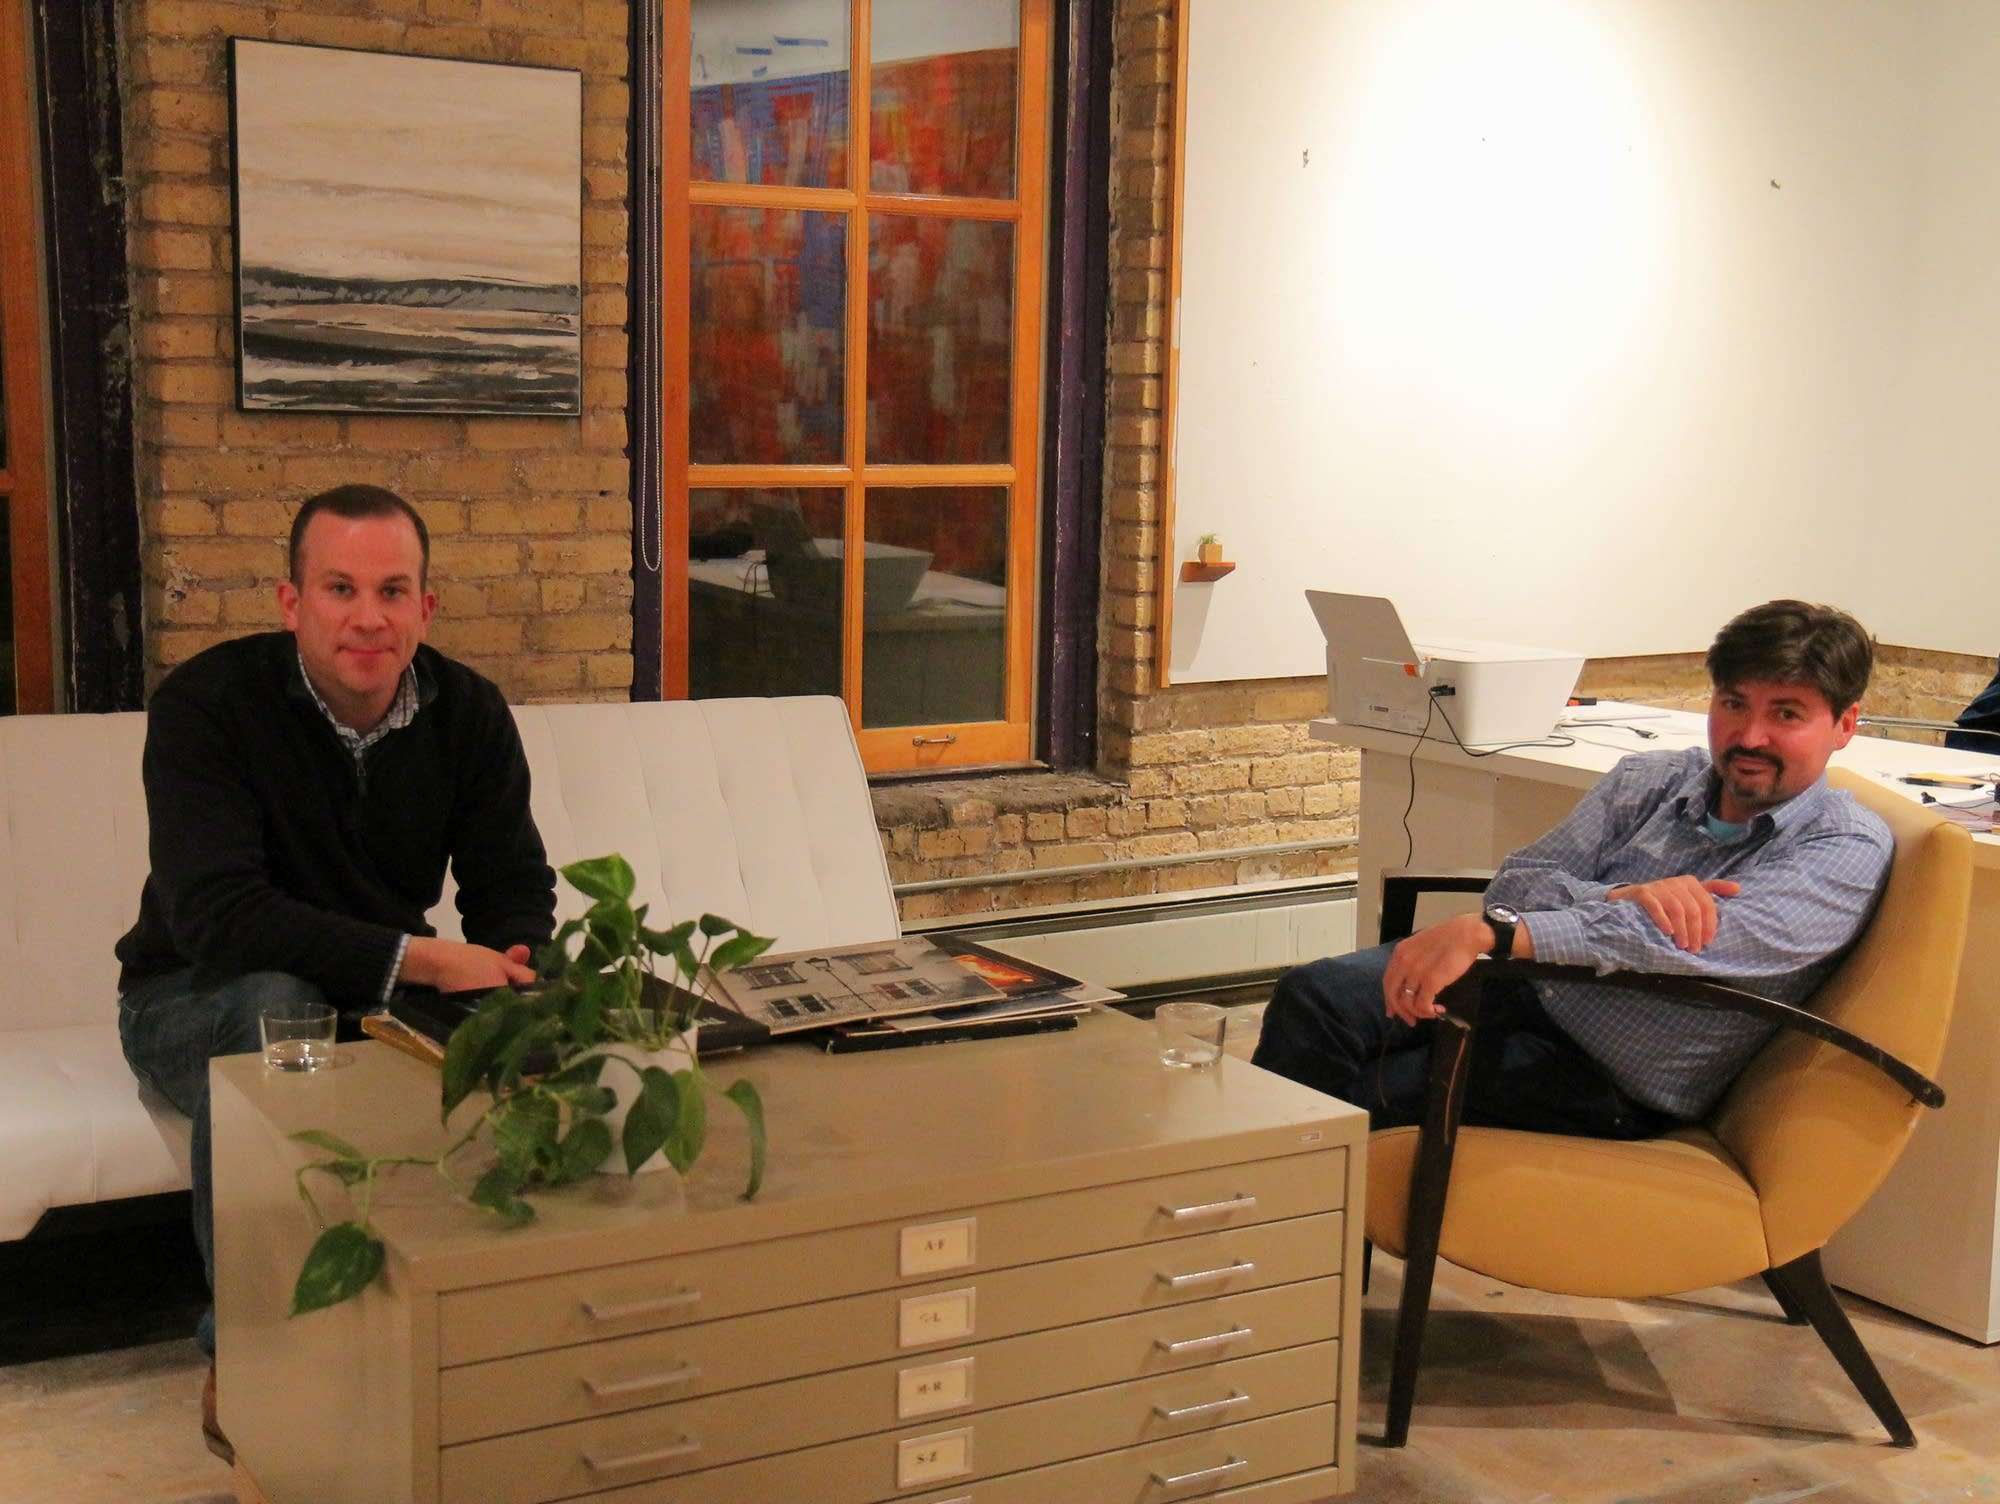 Jim O'Neill, left, and Michael Sutton chat about a vinyl collection.